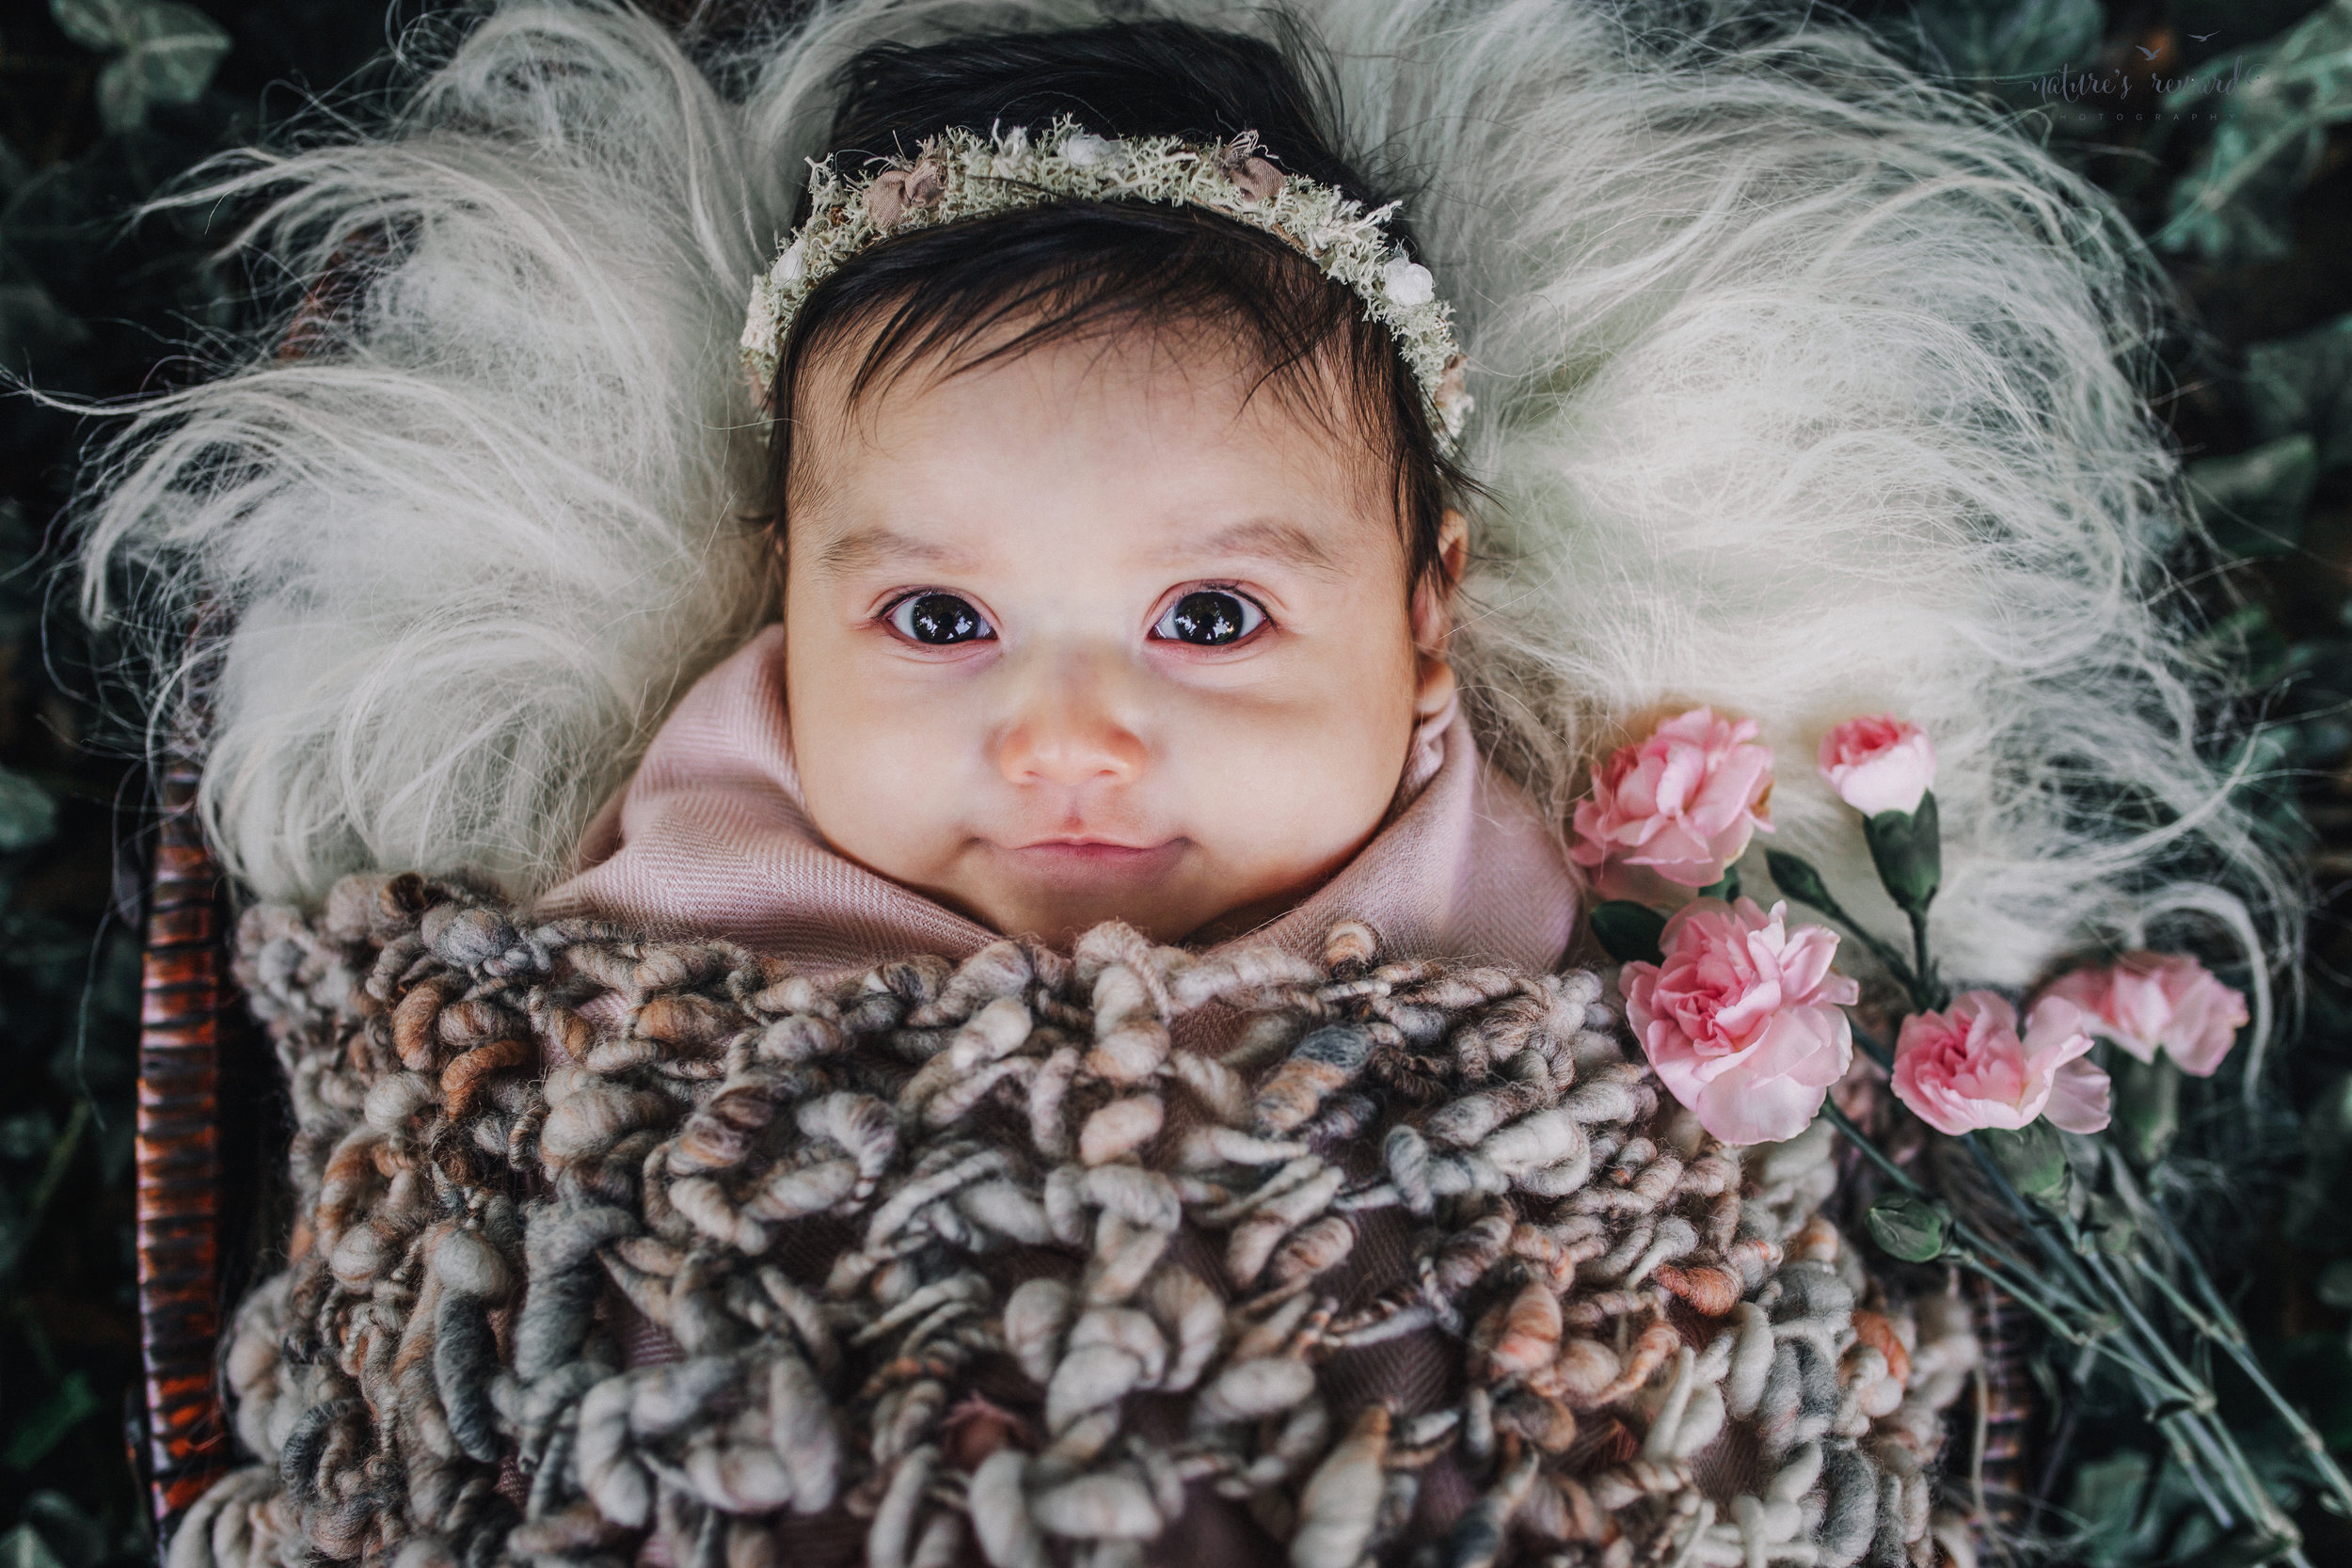 Lovely 10 week old newborn baby girl swaddled in pink under a blanket, in a bed of ivy- a portrait by Nature's Reward Photography